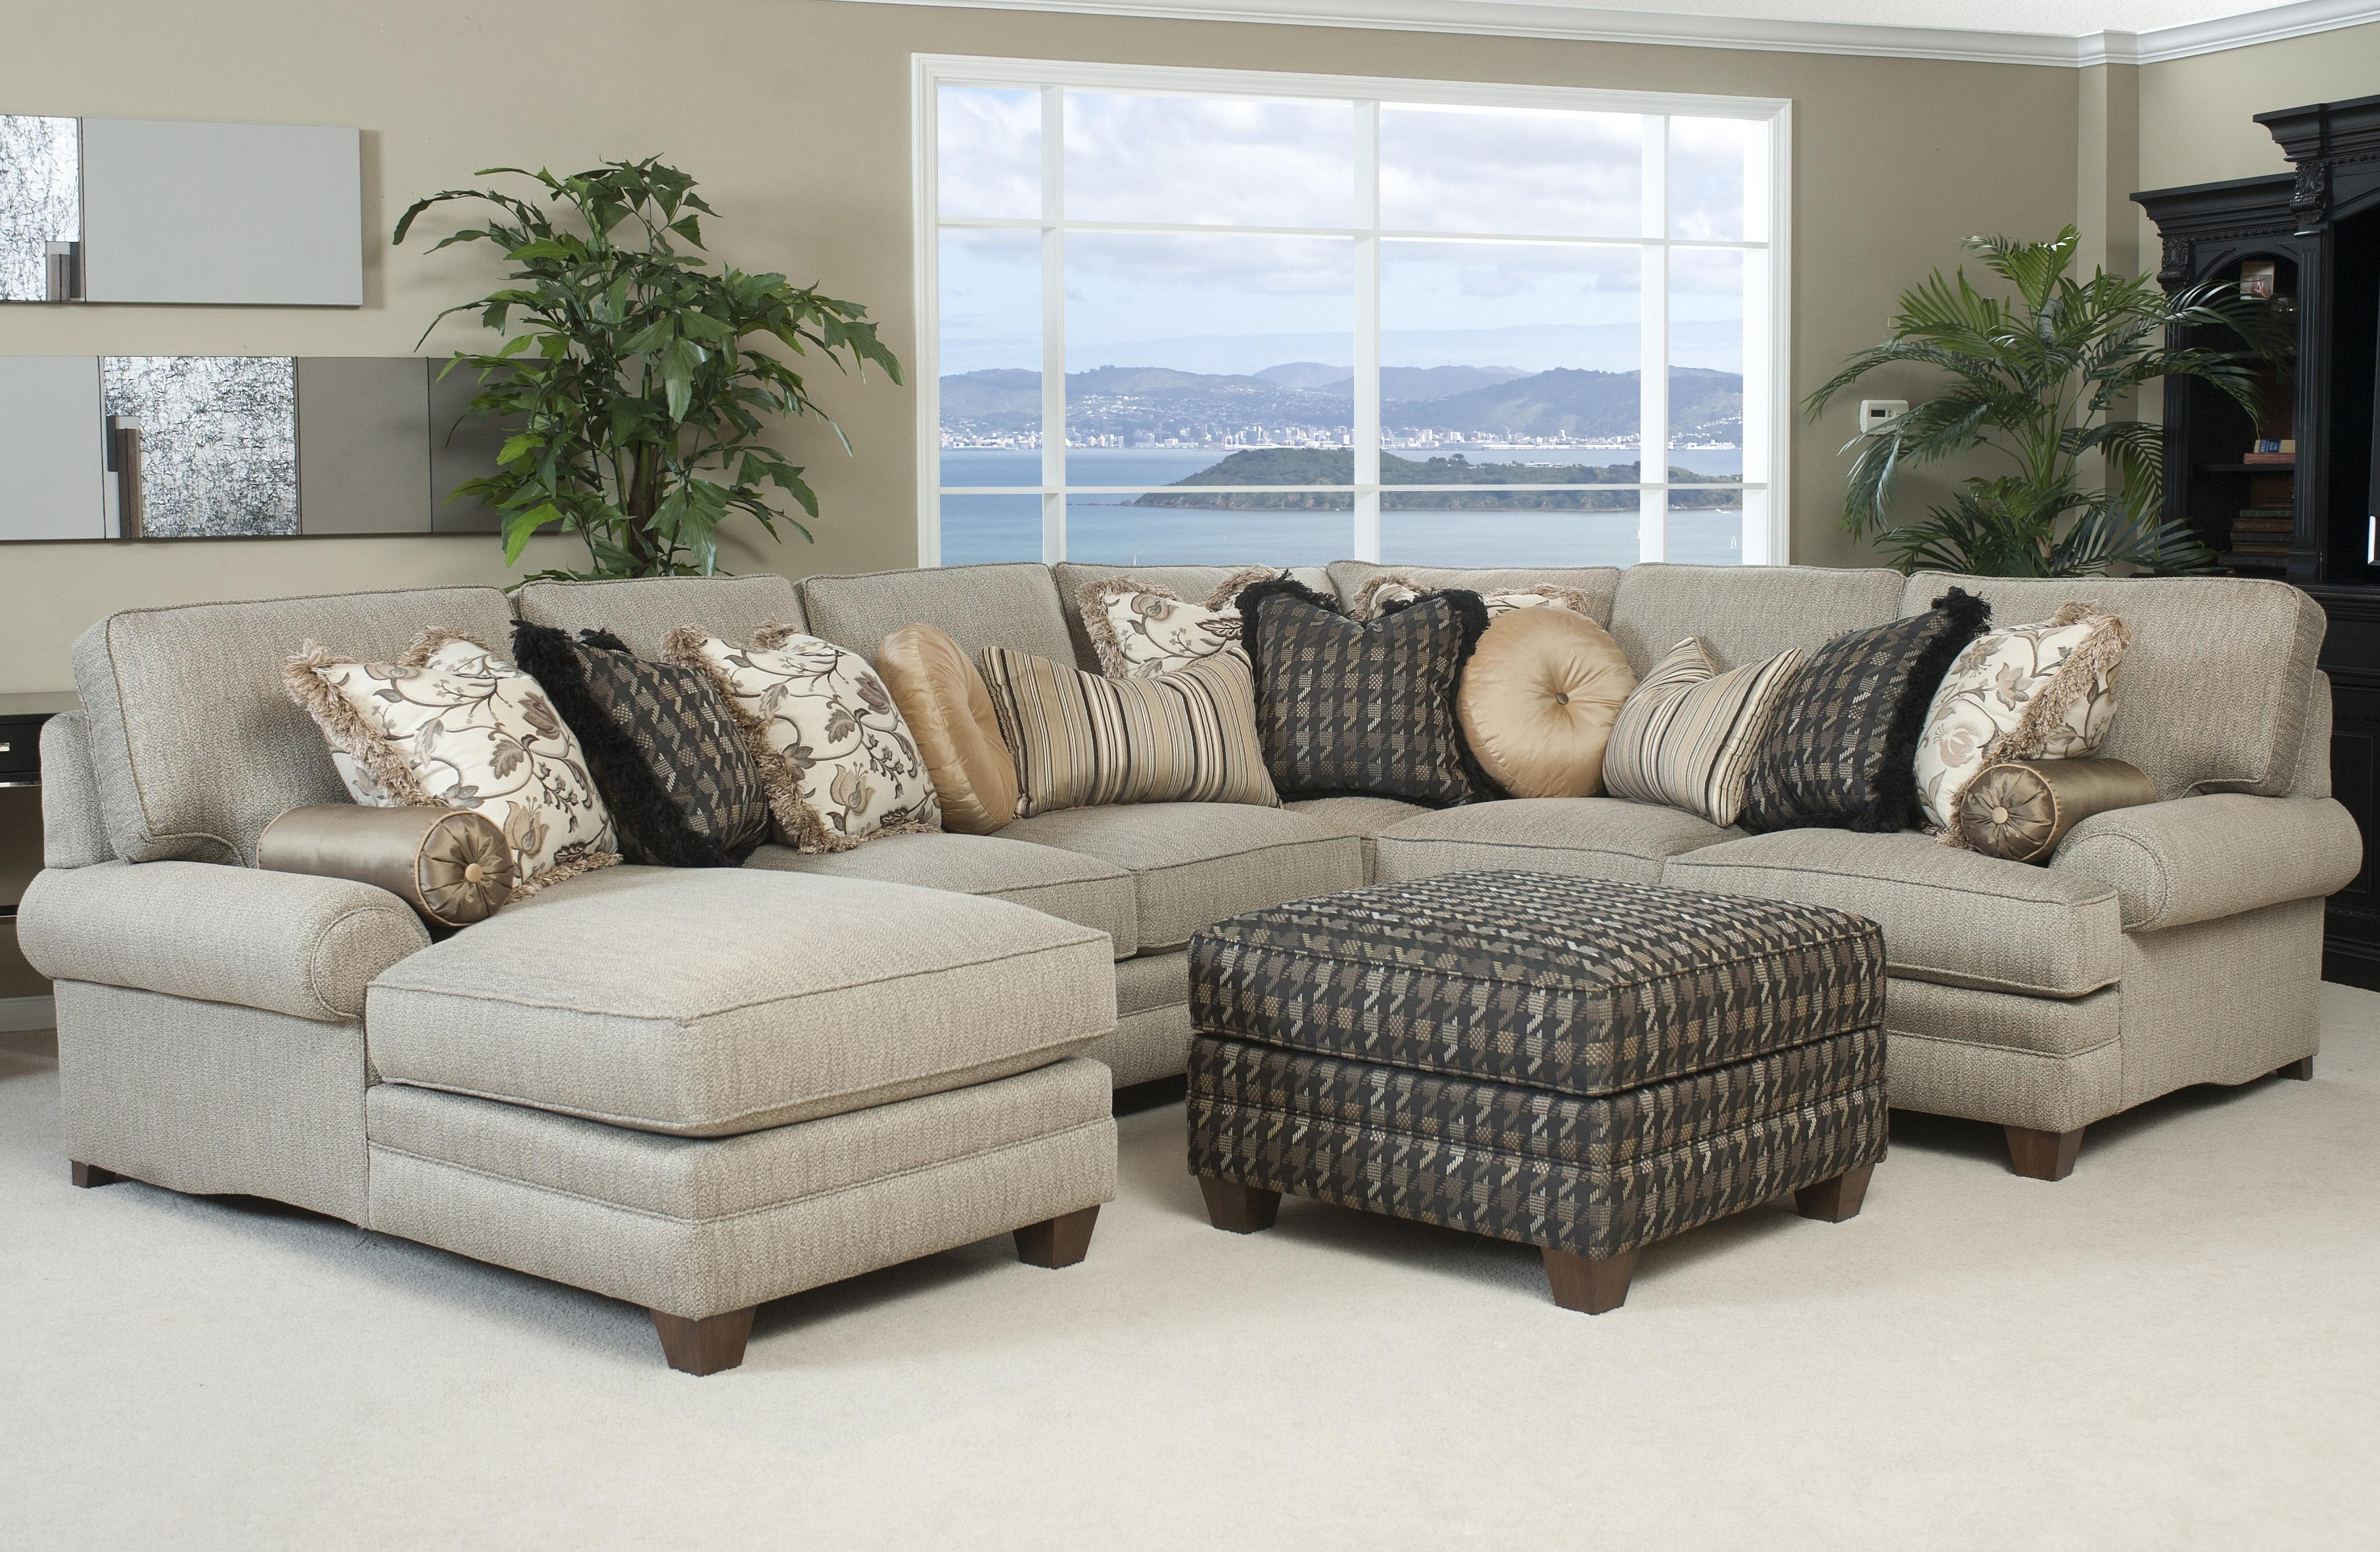 High Quality Sectional Sofas With Regard To Fashionable Large Sectional Sofa With Ottoman (View 8 of 20)